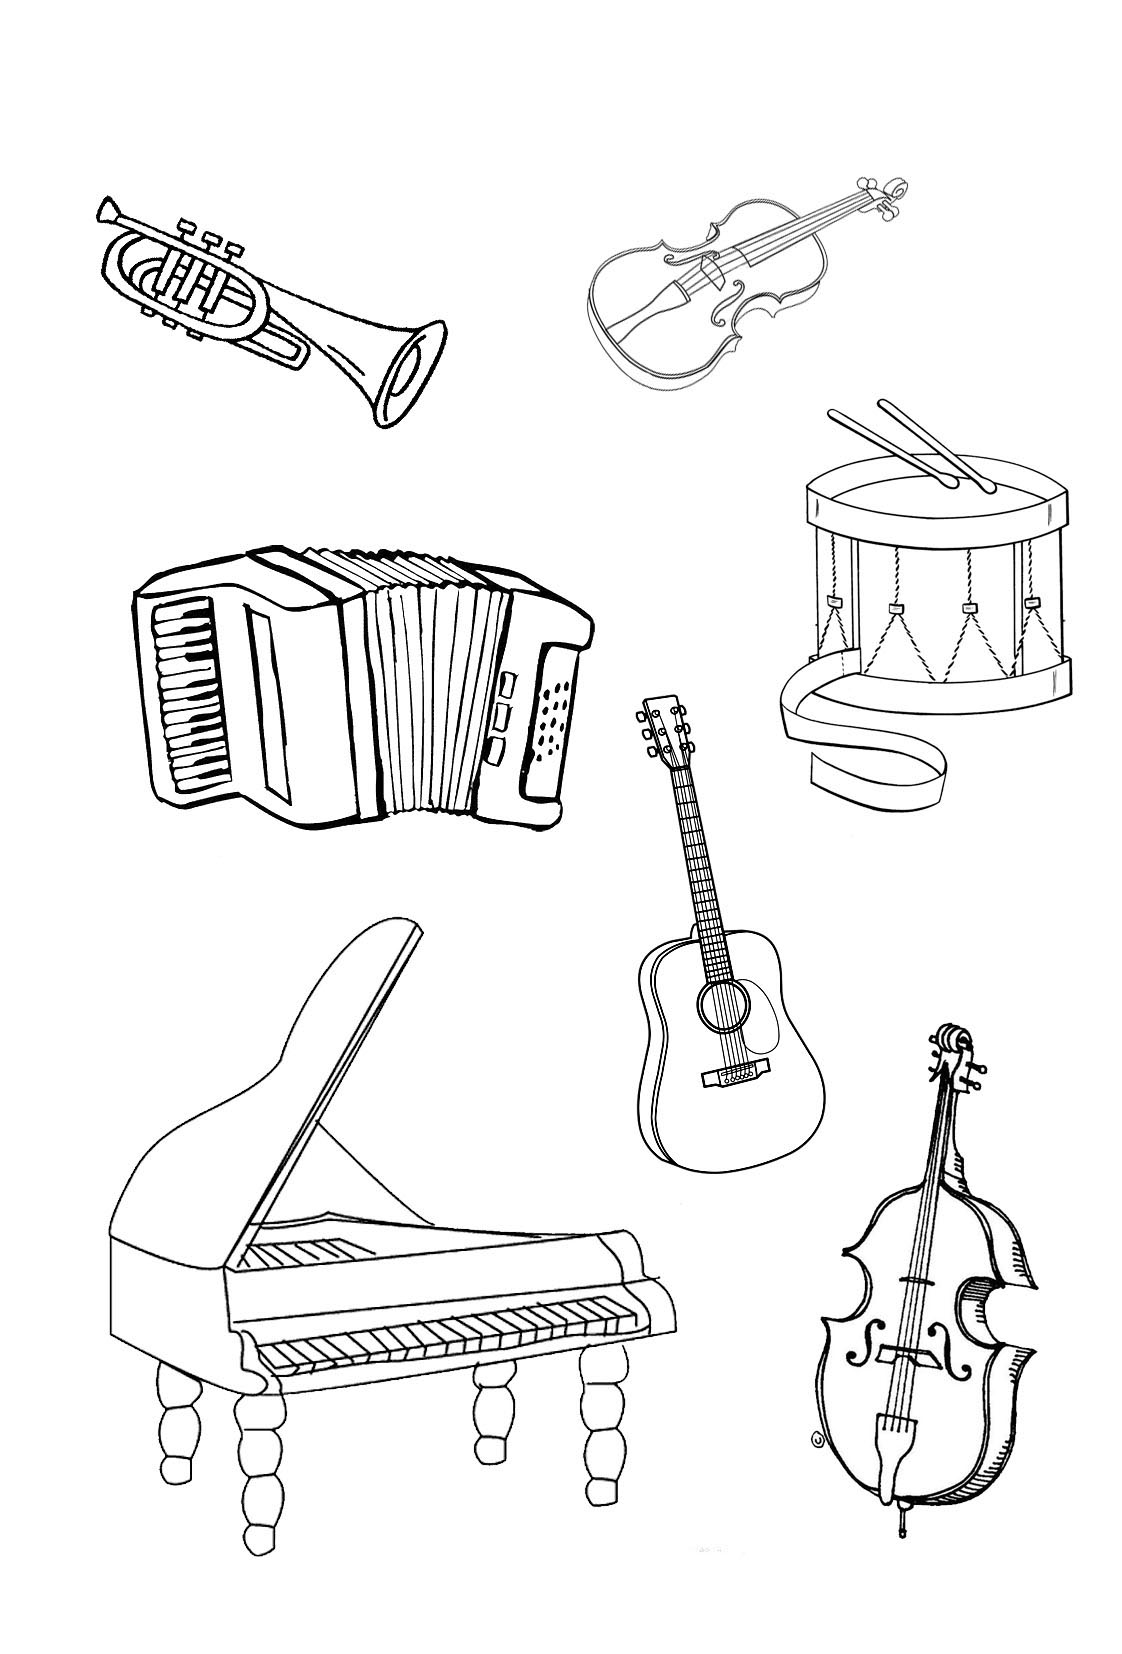 music instruments coloring pages kids n funcom 62 coloring pages of musical instruments music coloring instruments pages